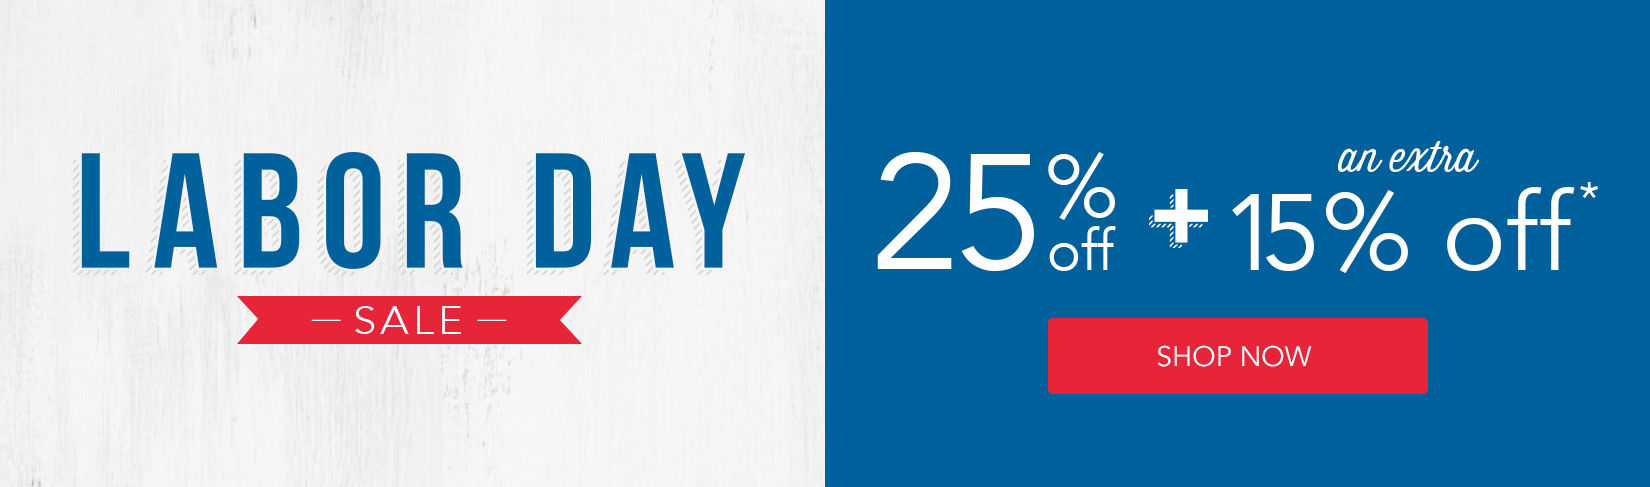 Labor Day Sale | 25% off + Extra 15% off*